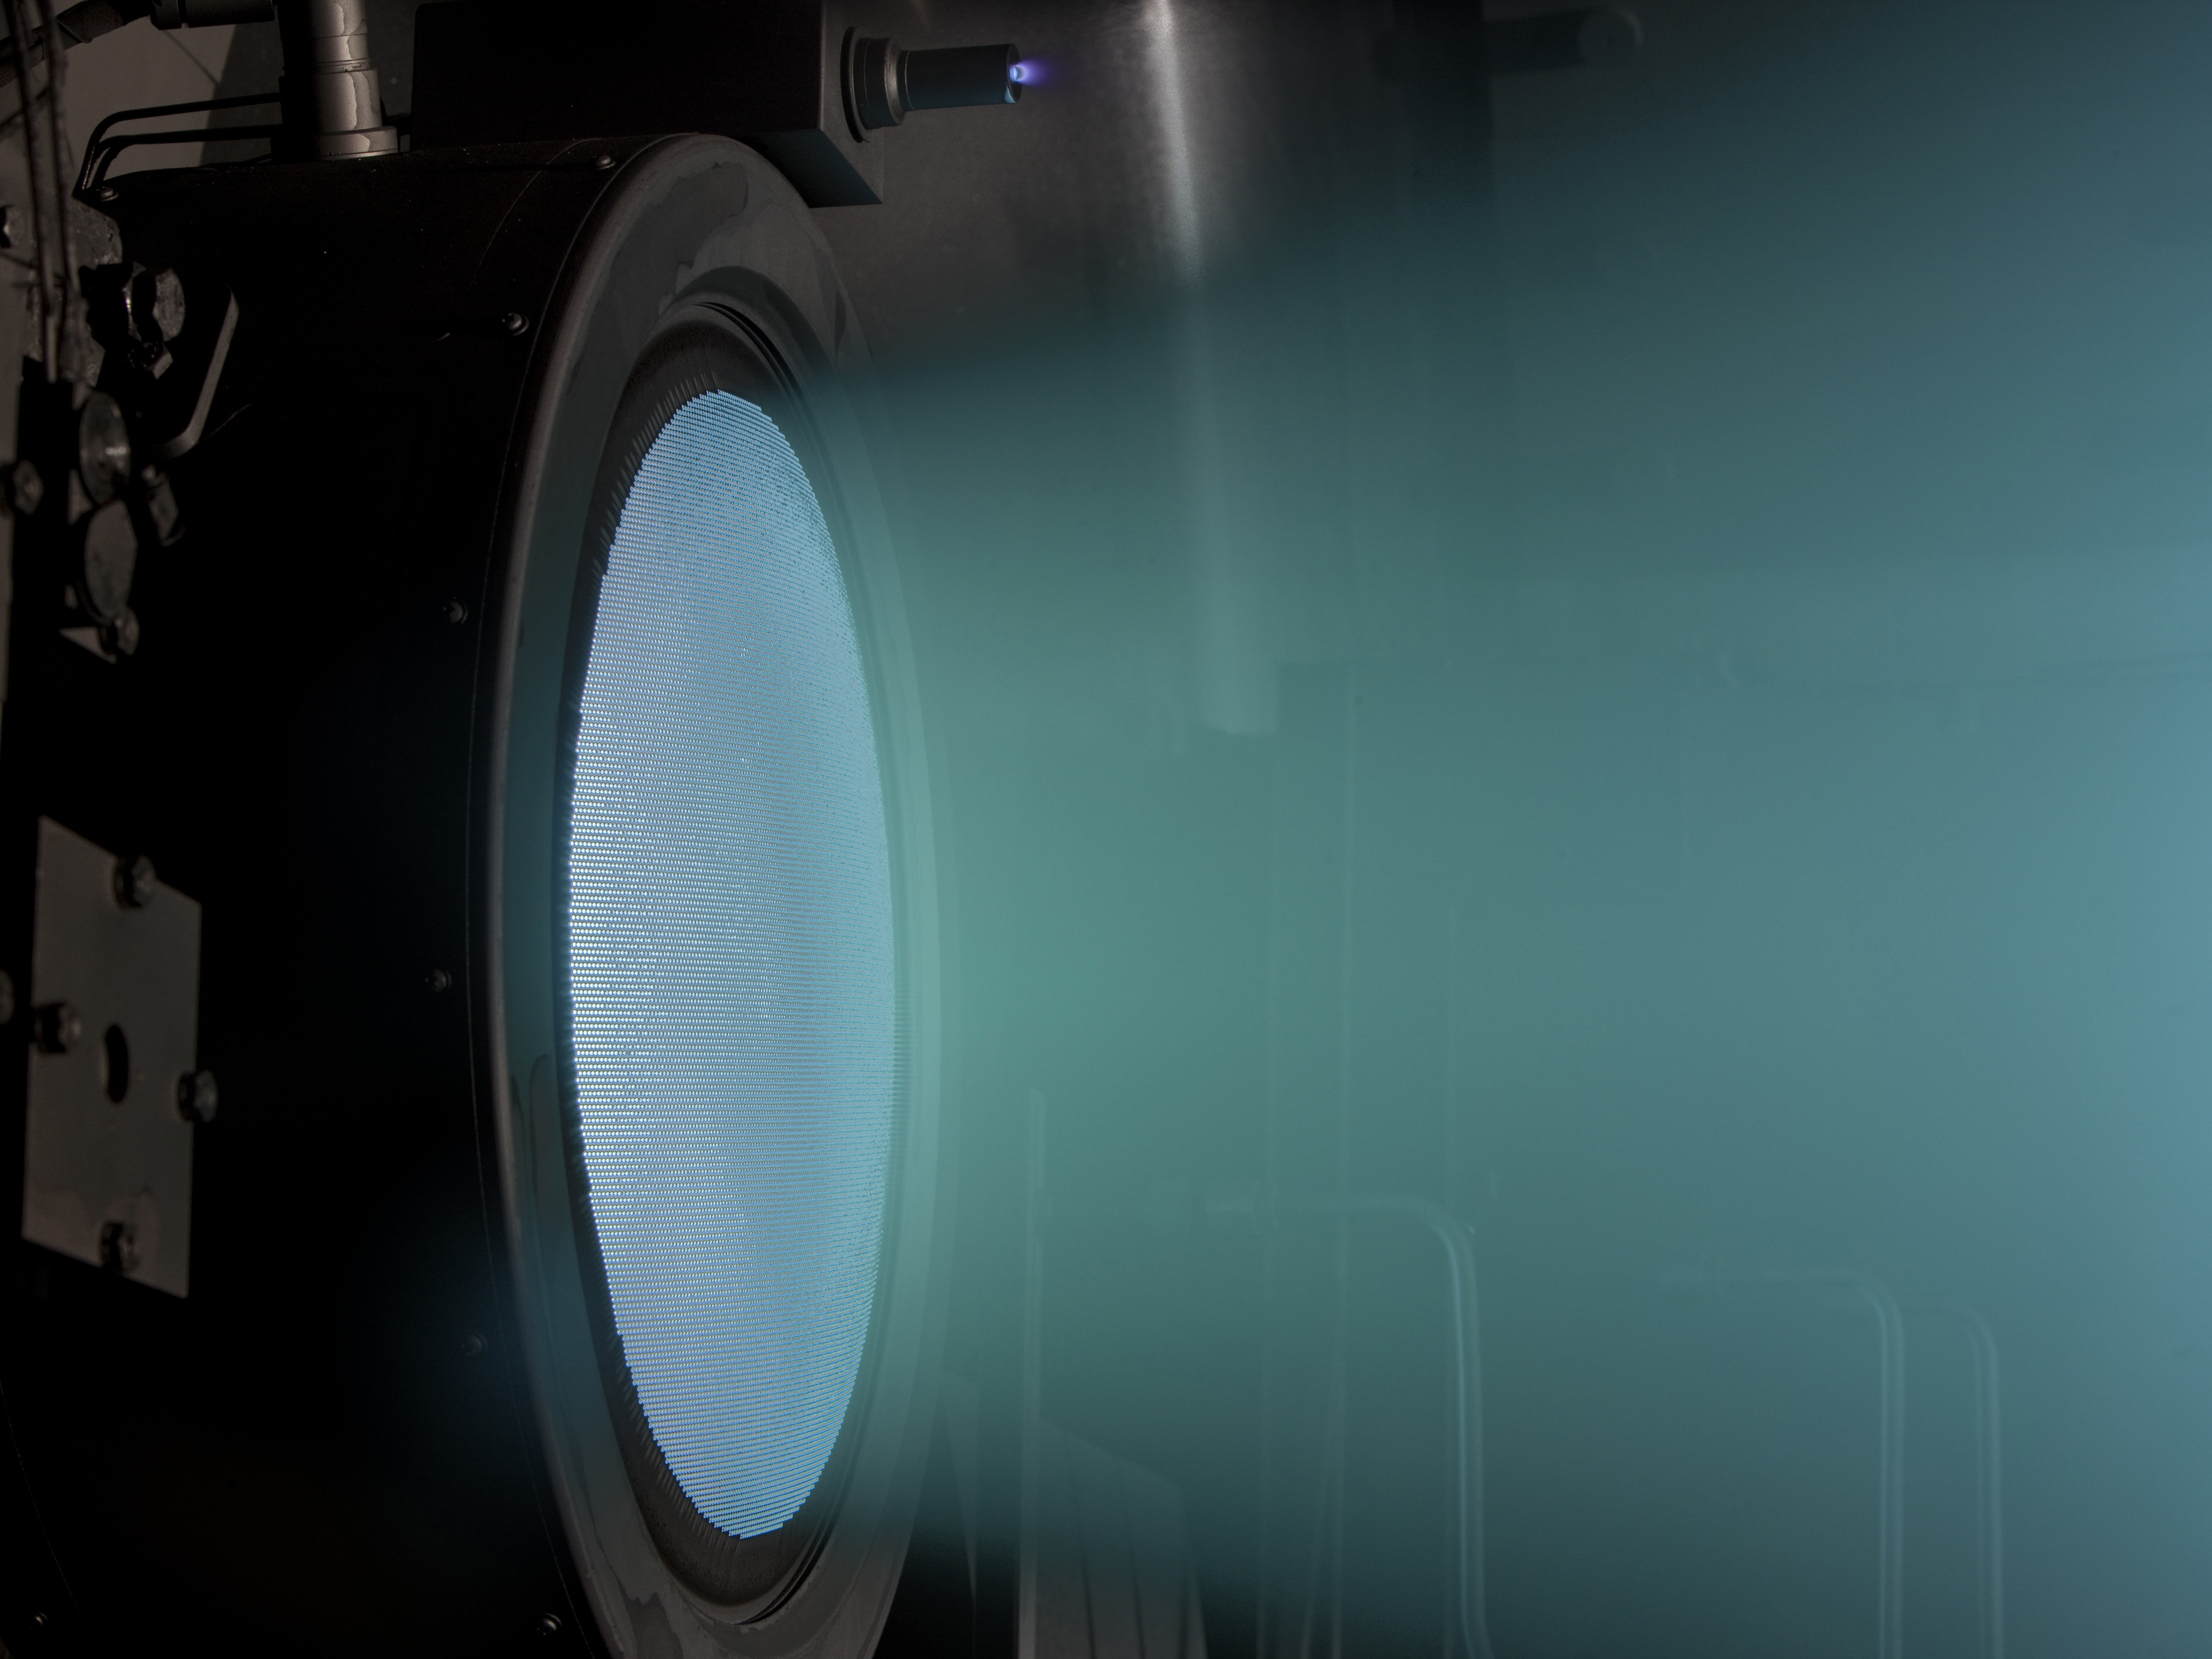 NEXT (ion thruster) - Wikipedia